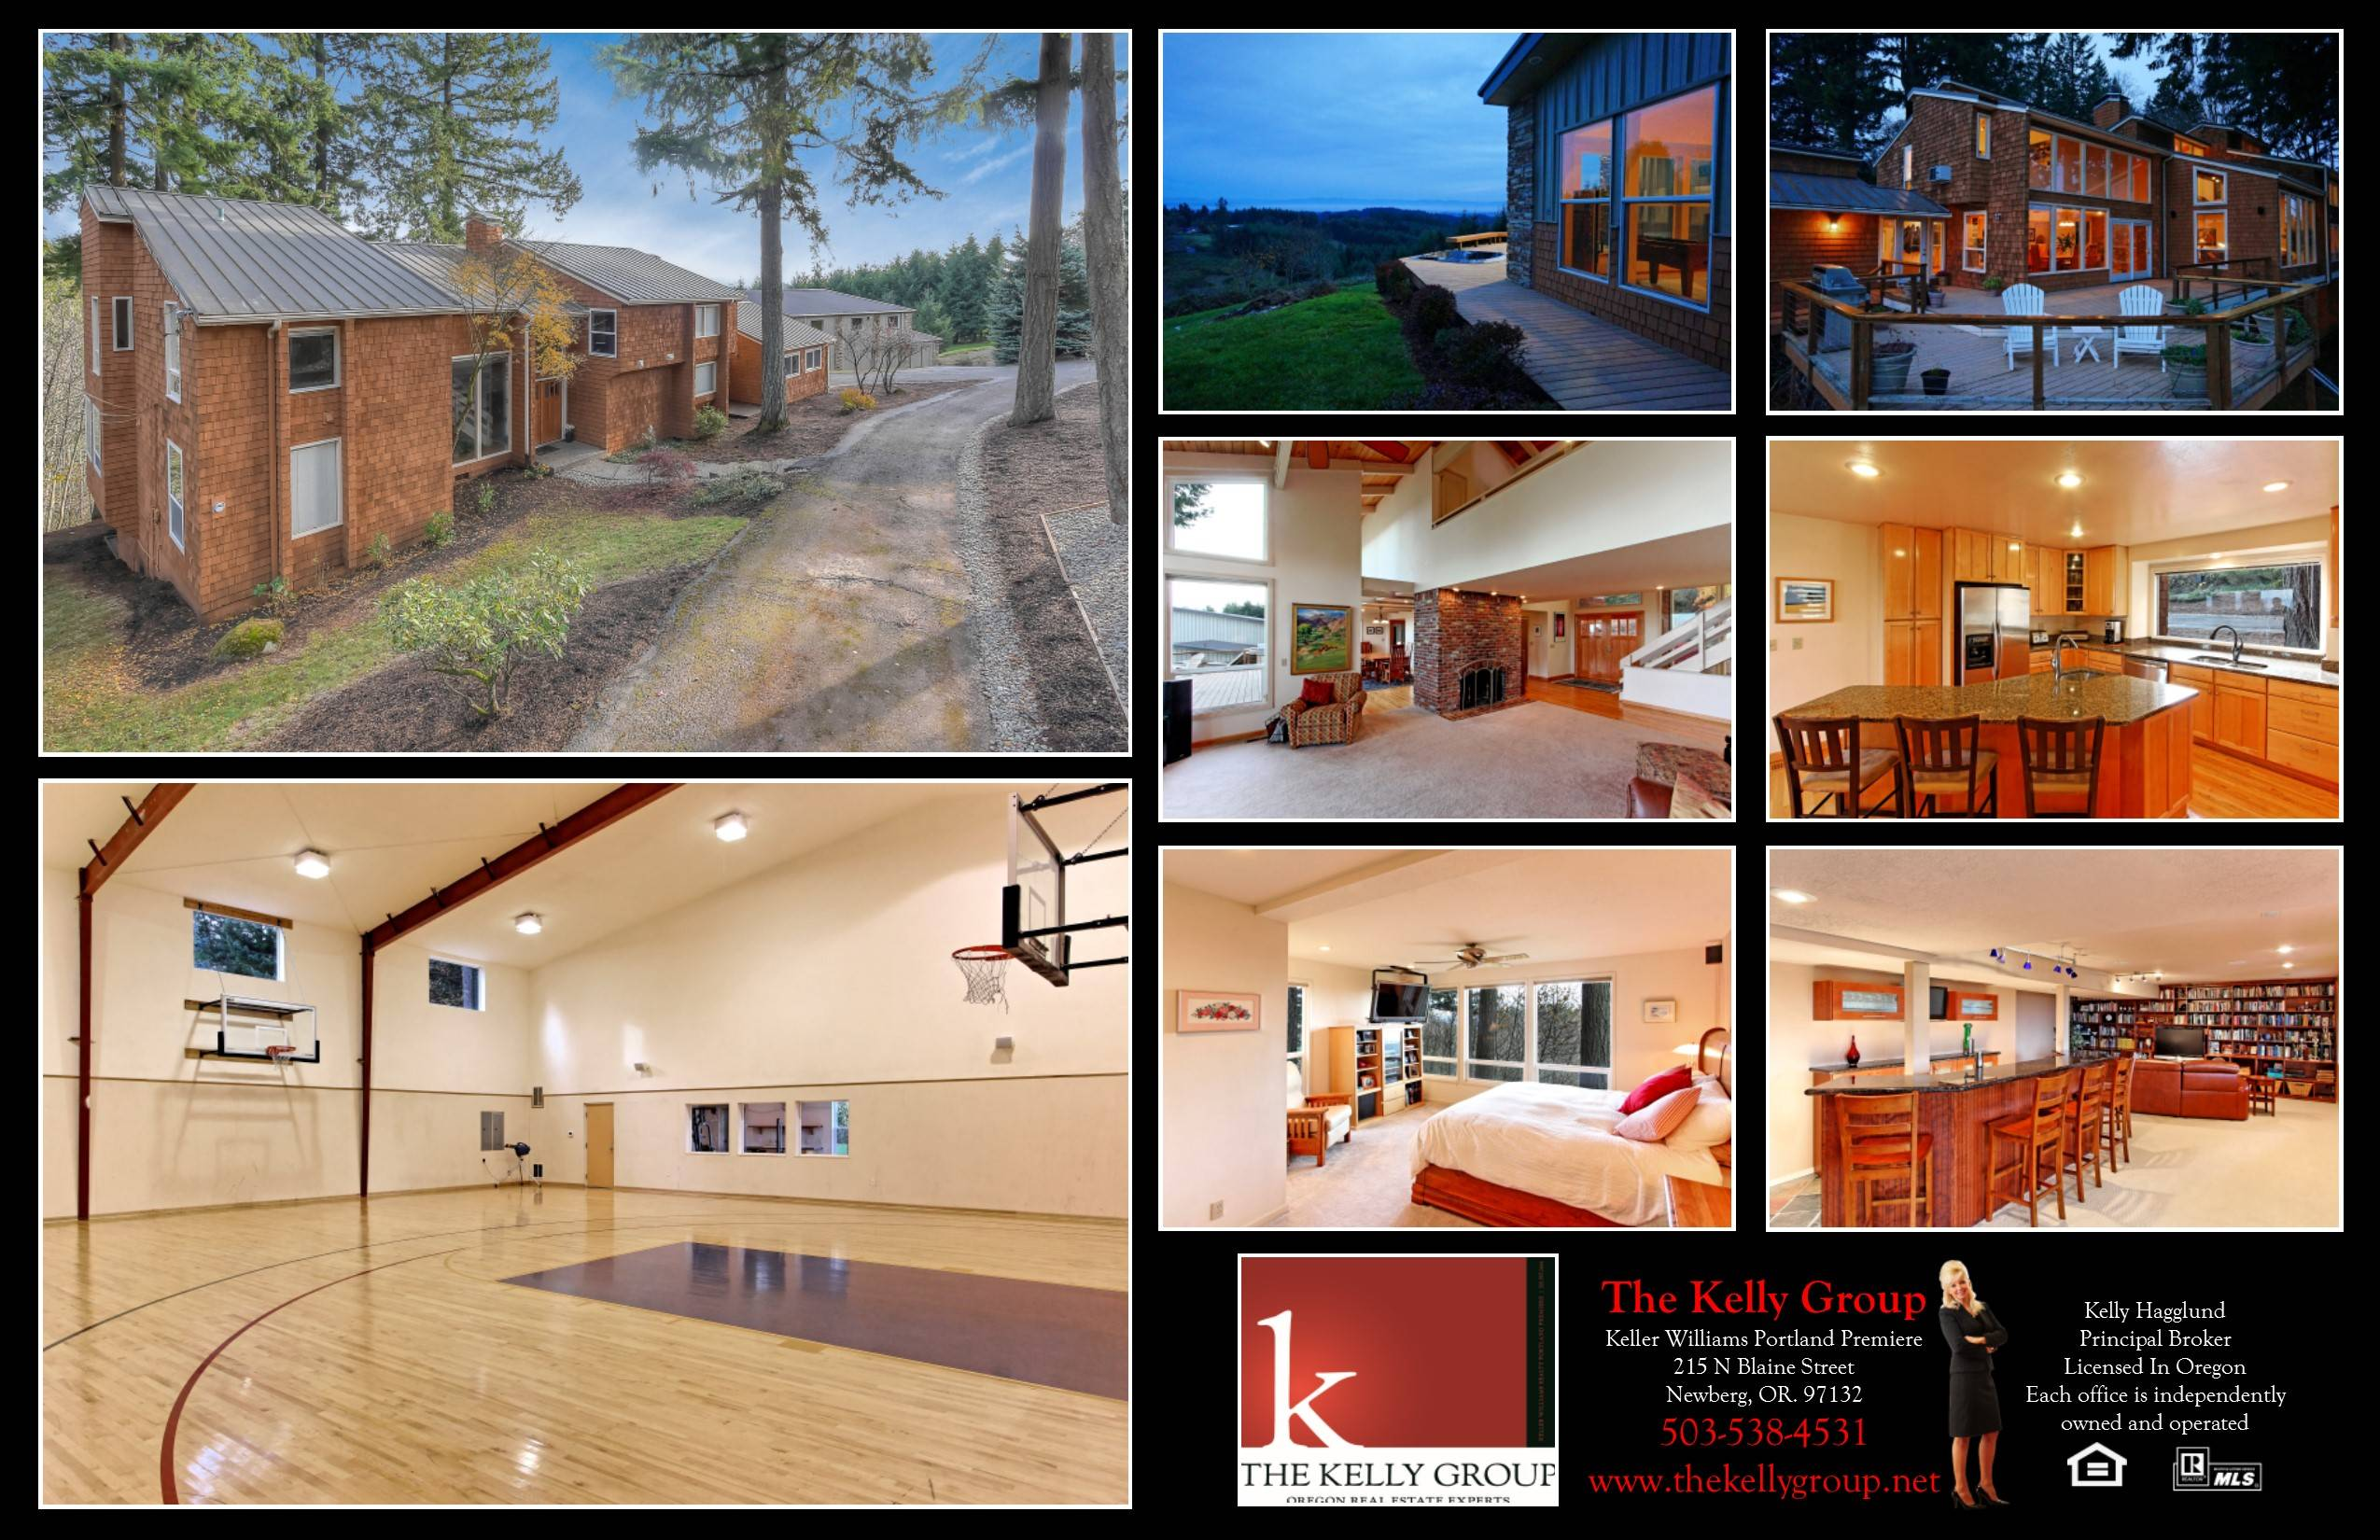 $300,000 Price Drop on Luxury Home in Newberg, OR